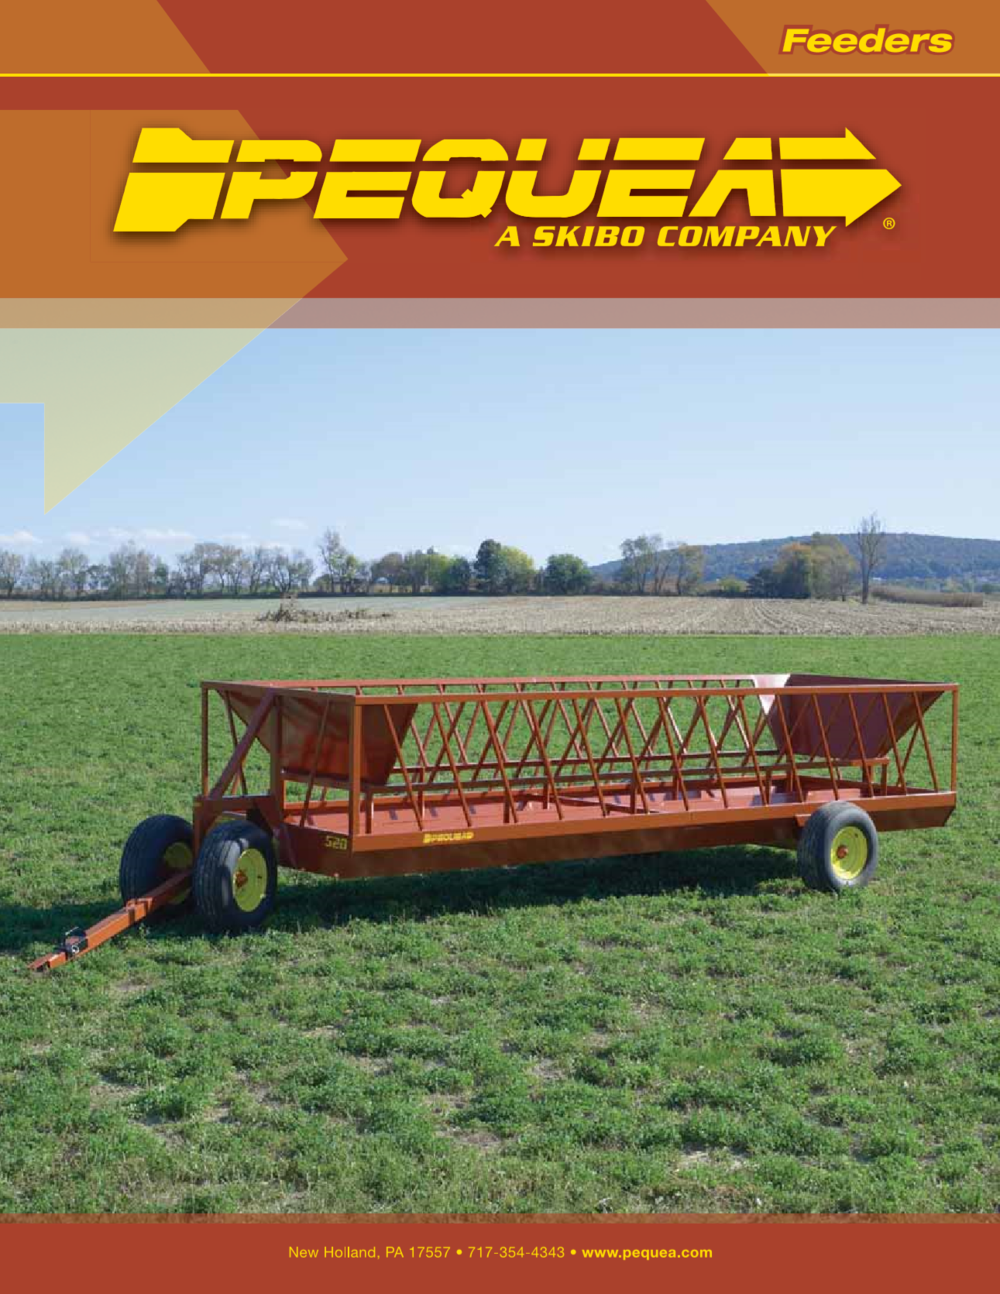 Feeders Brochure